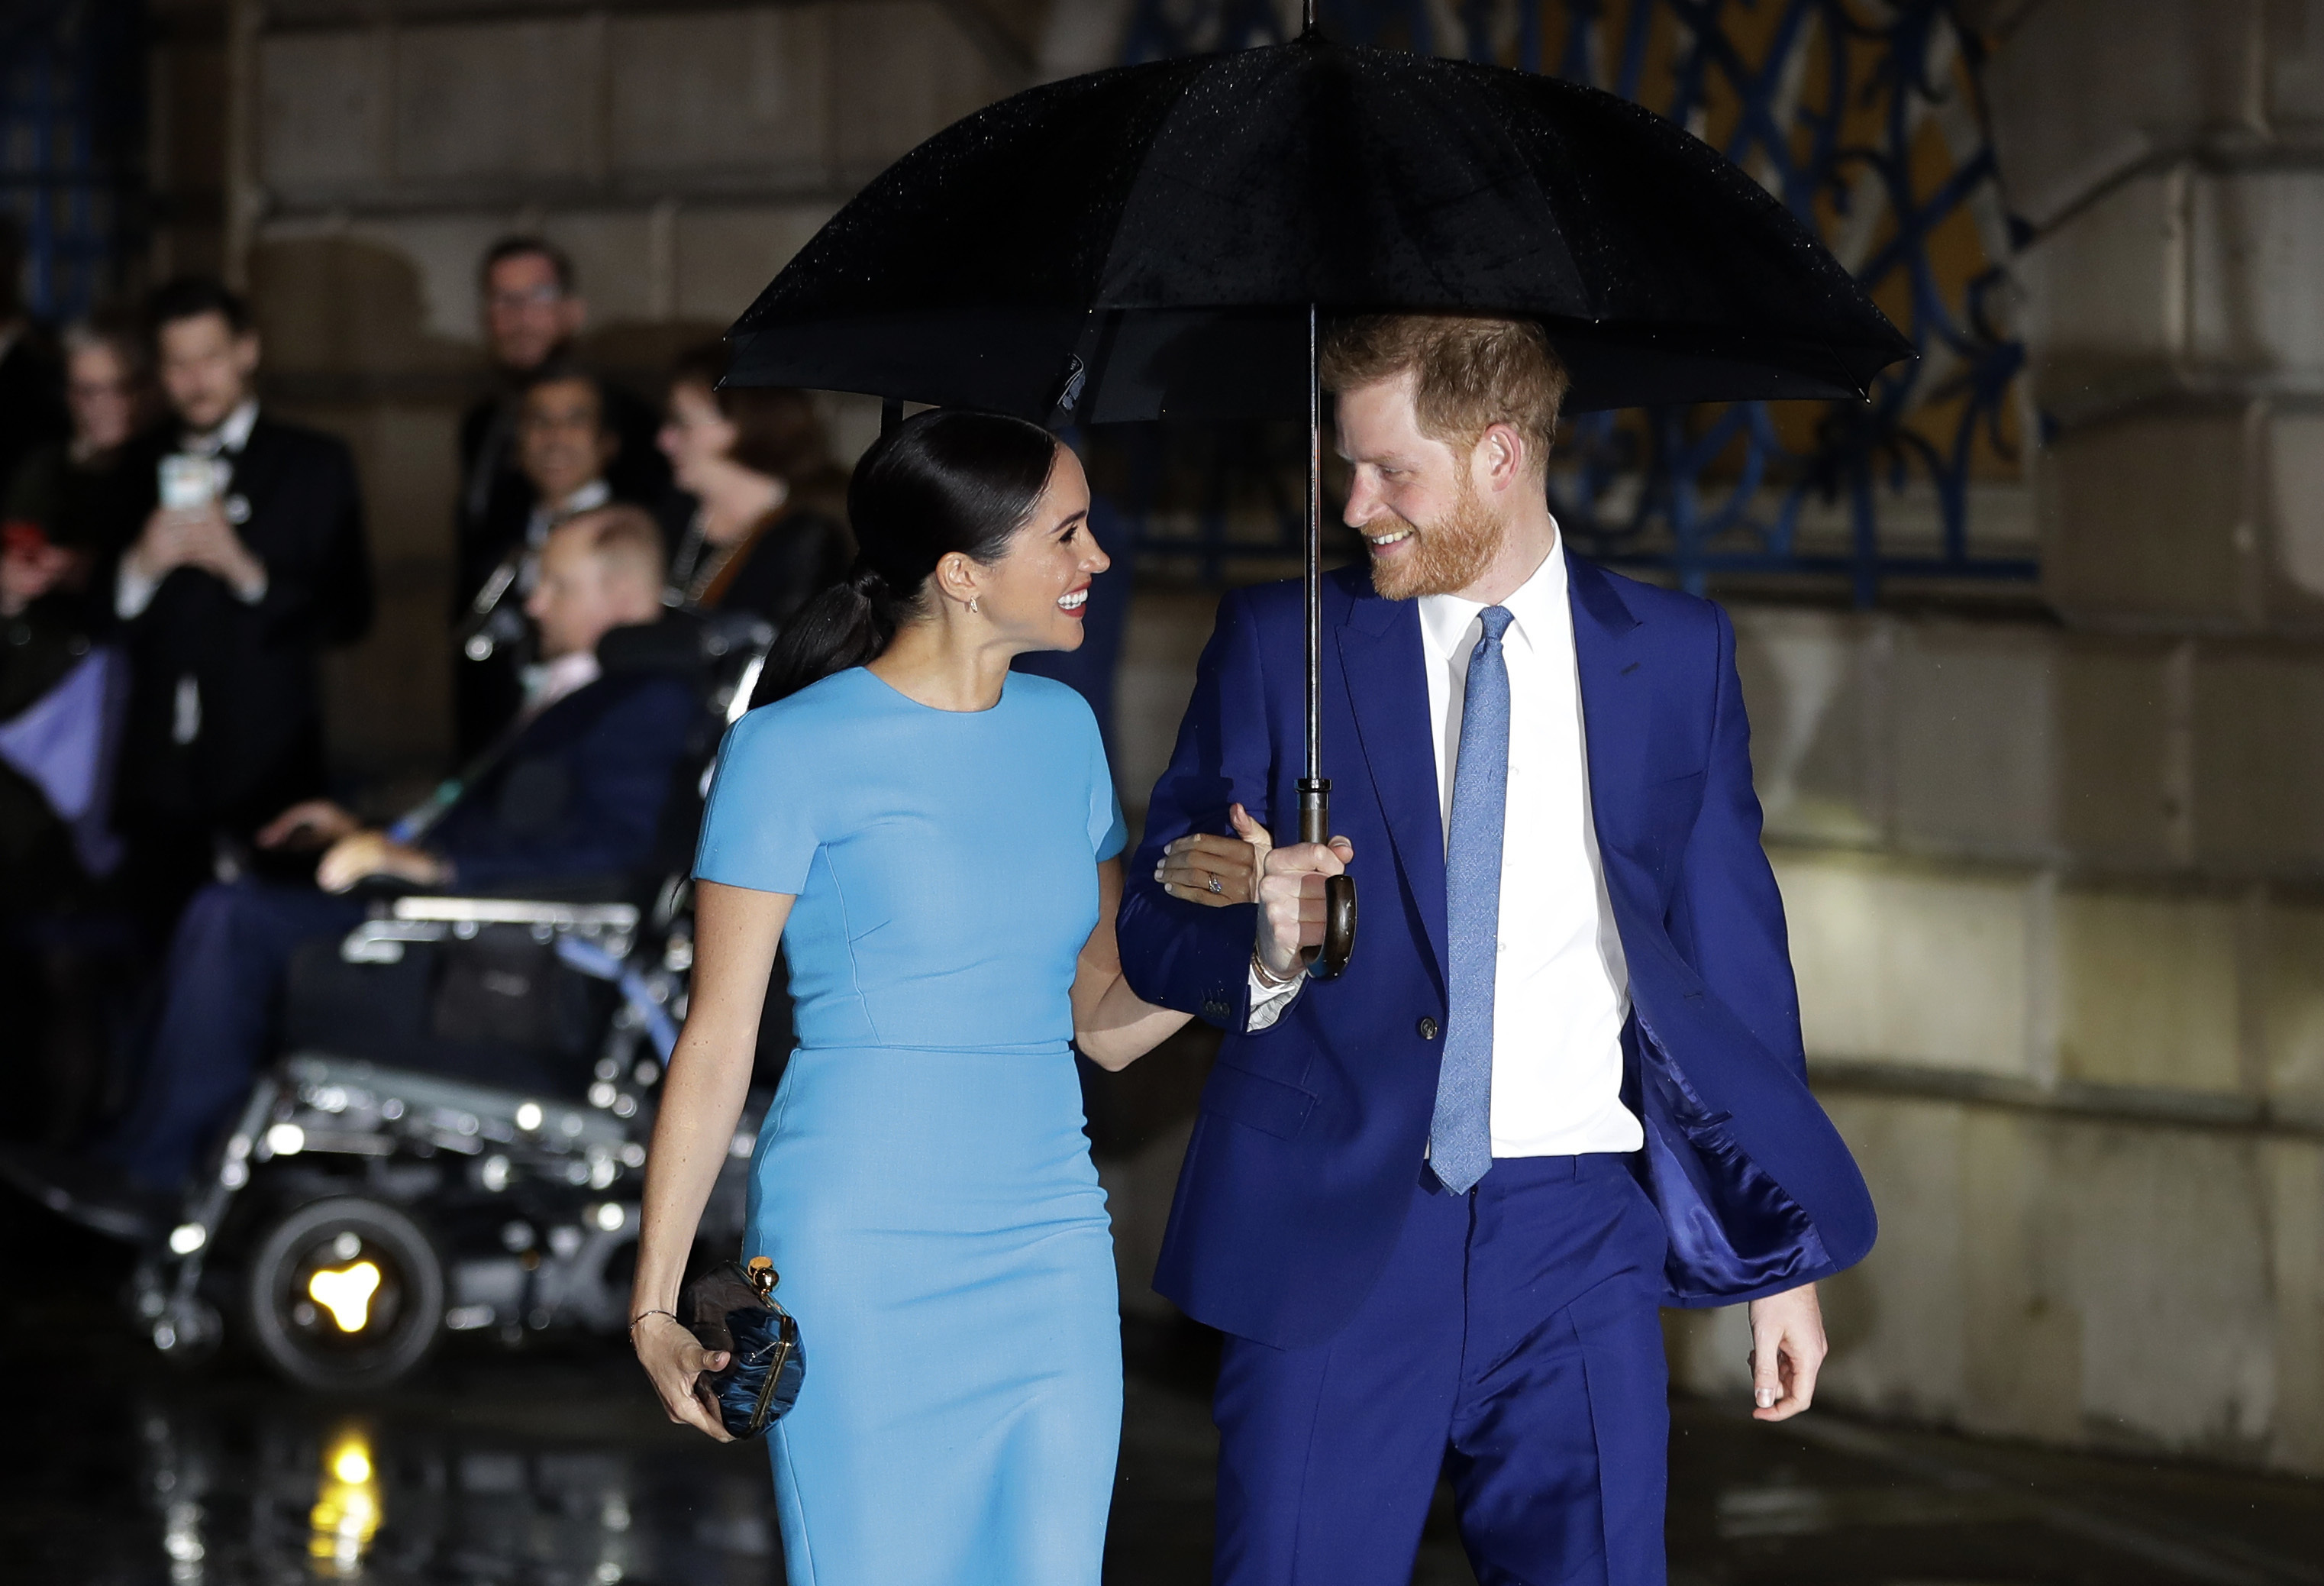 Britain's Prince Harry and Meghan, the Duke and Duchess of Sussex arrive at the annual Endeavour Fund Awards in London, on March 5, 2020.